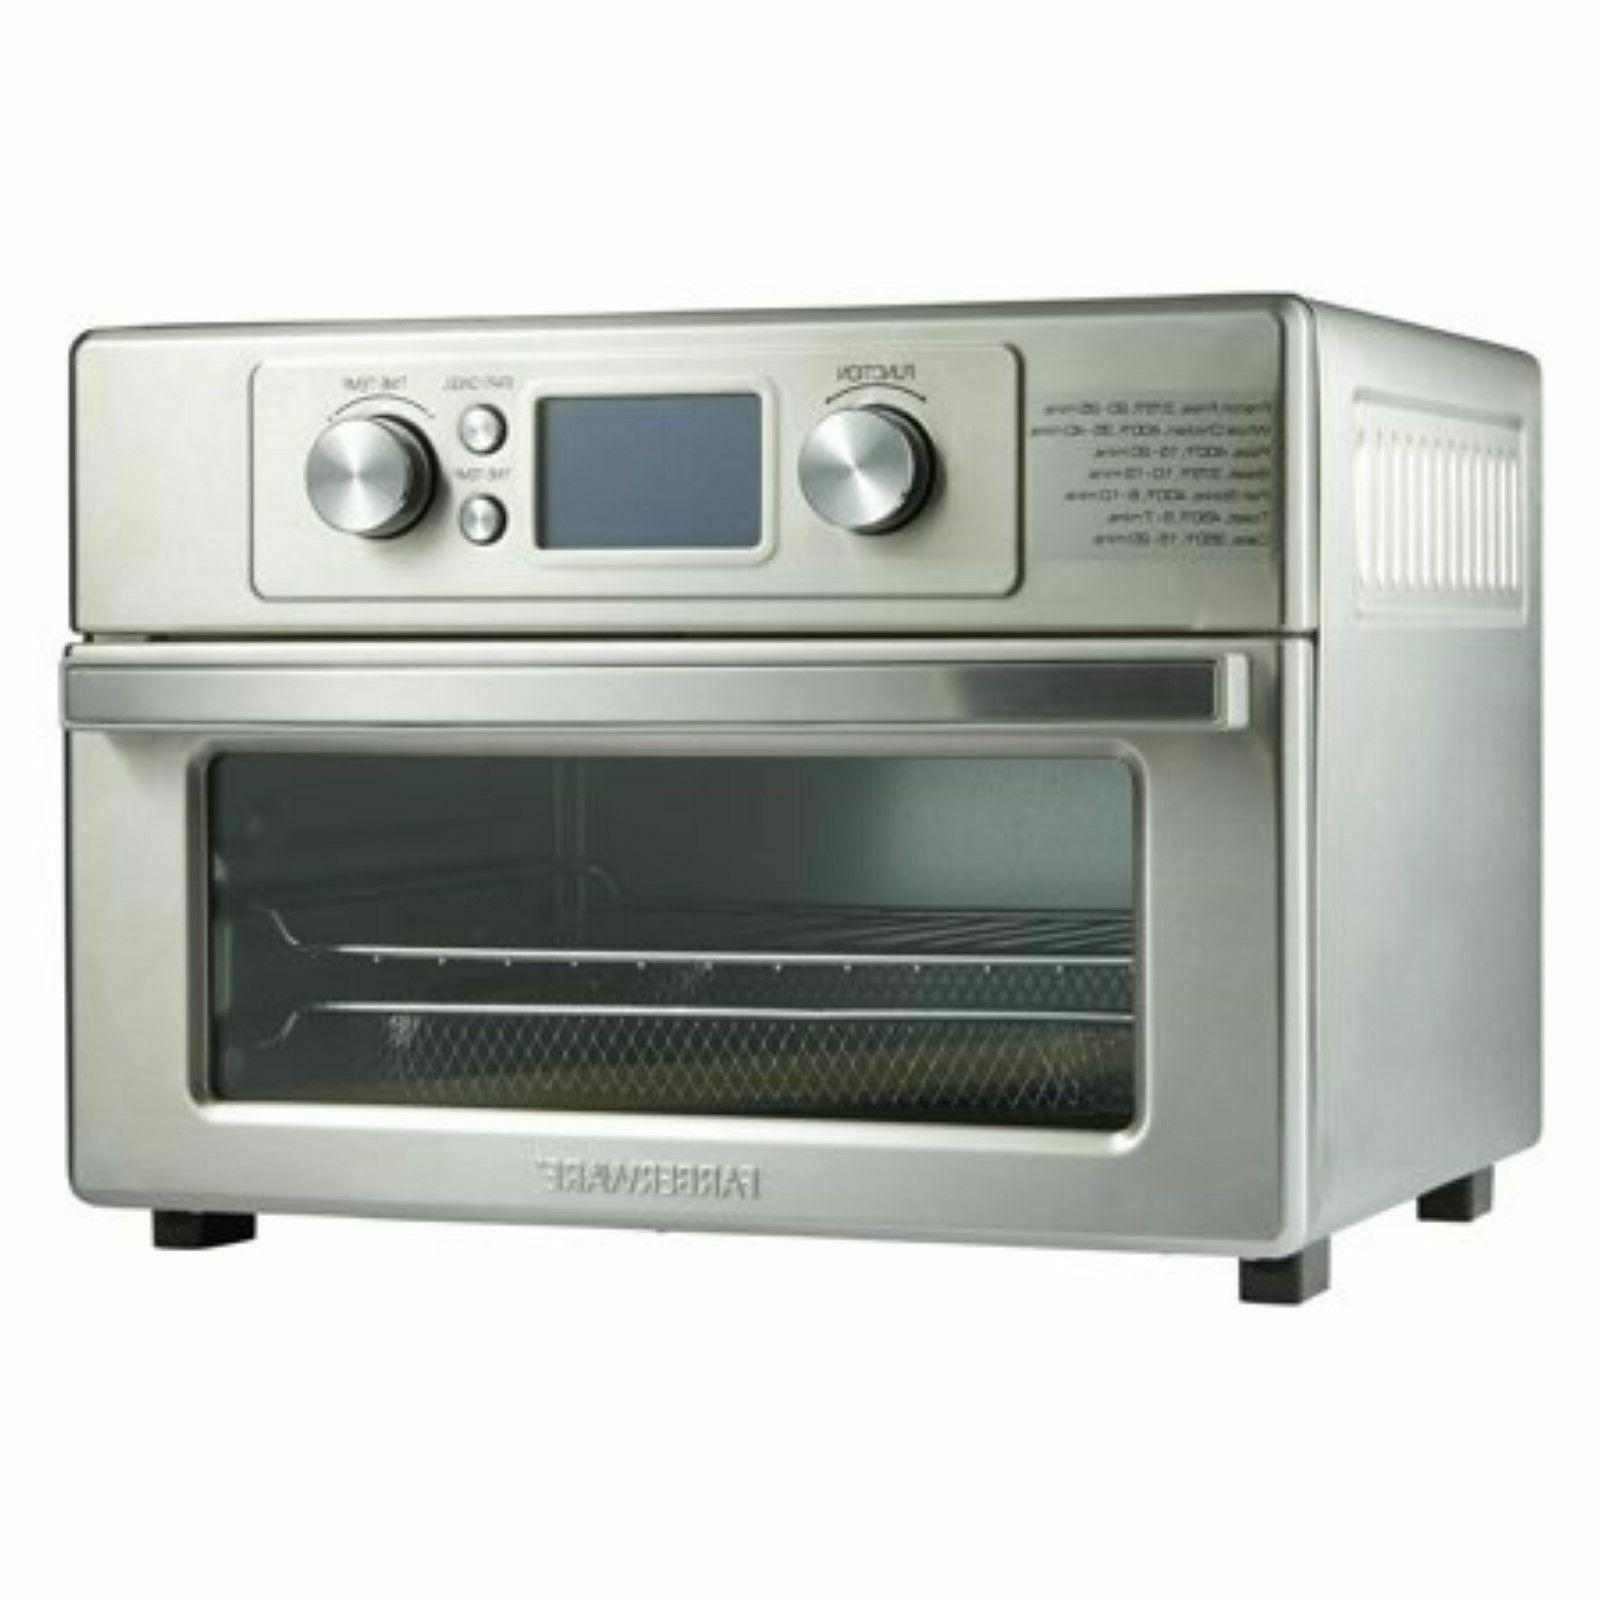 Air Fryer Toaster Oven Home Kitchen Food Cooking No Oil Dinn